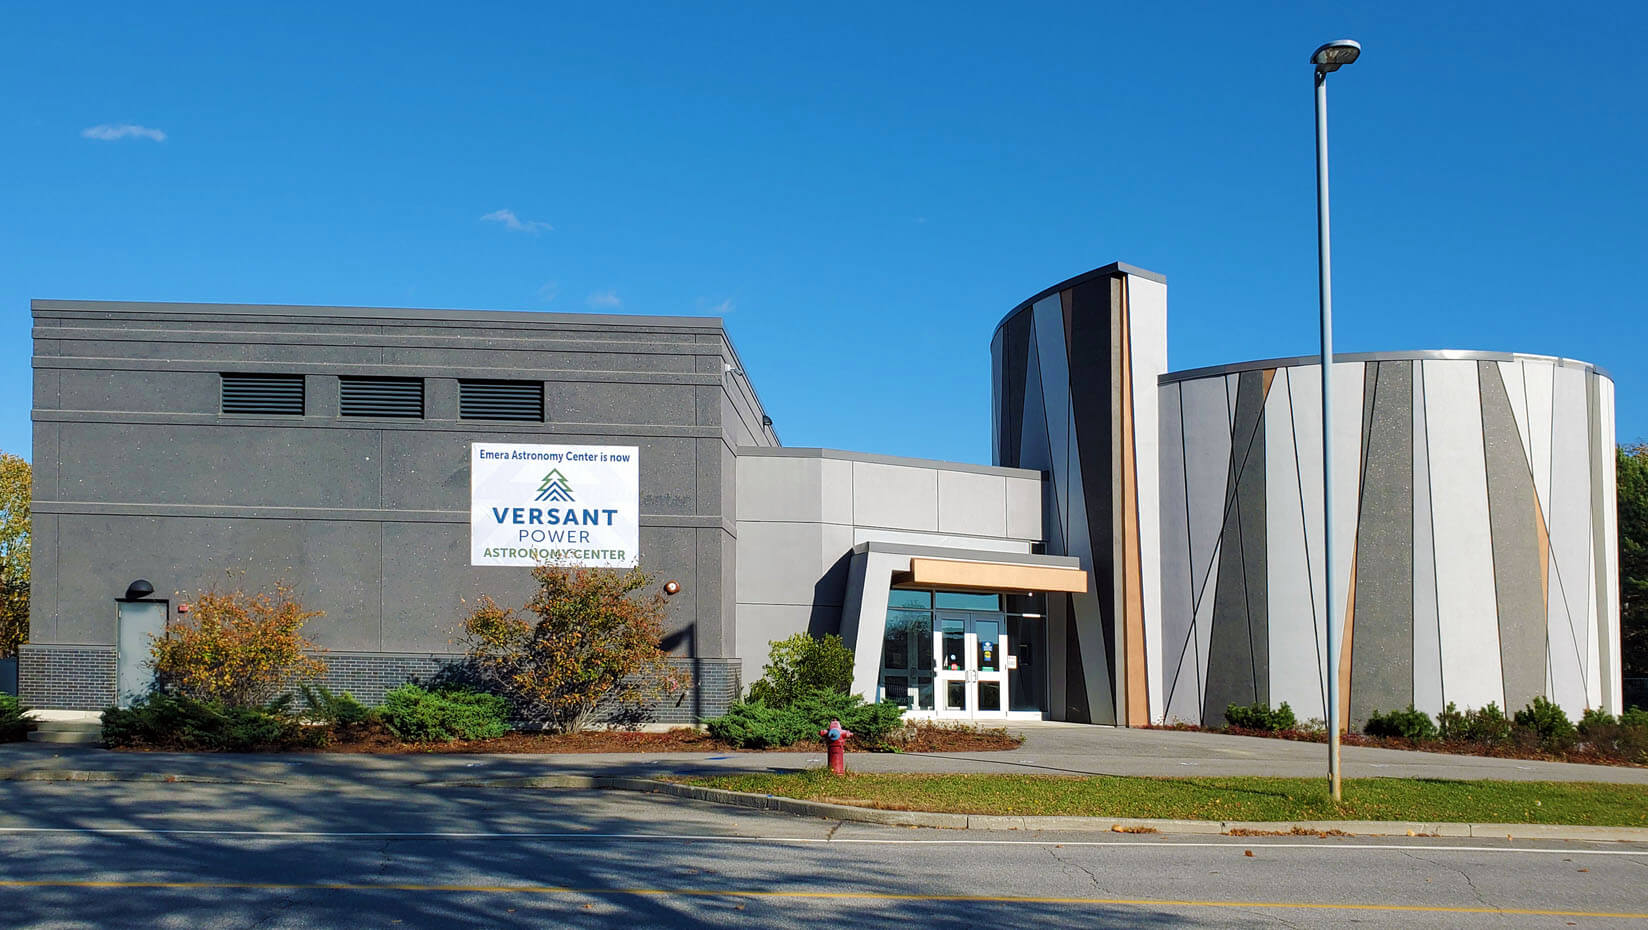 featured image for UMaine Emera Astronomy Center is now Versant Power Astronomy Center